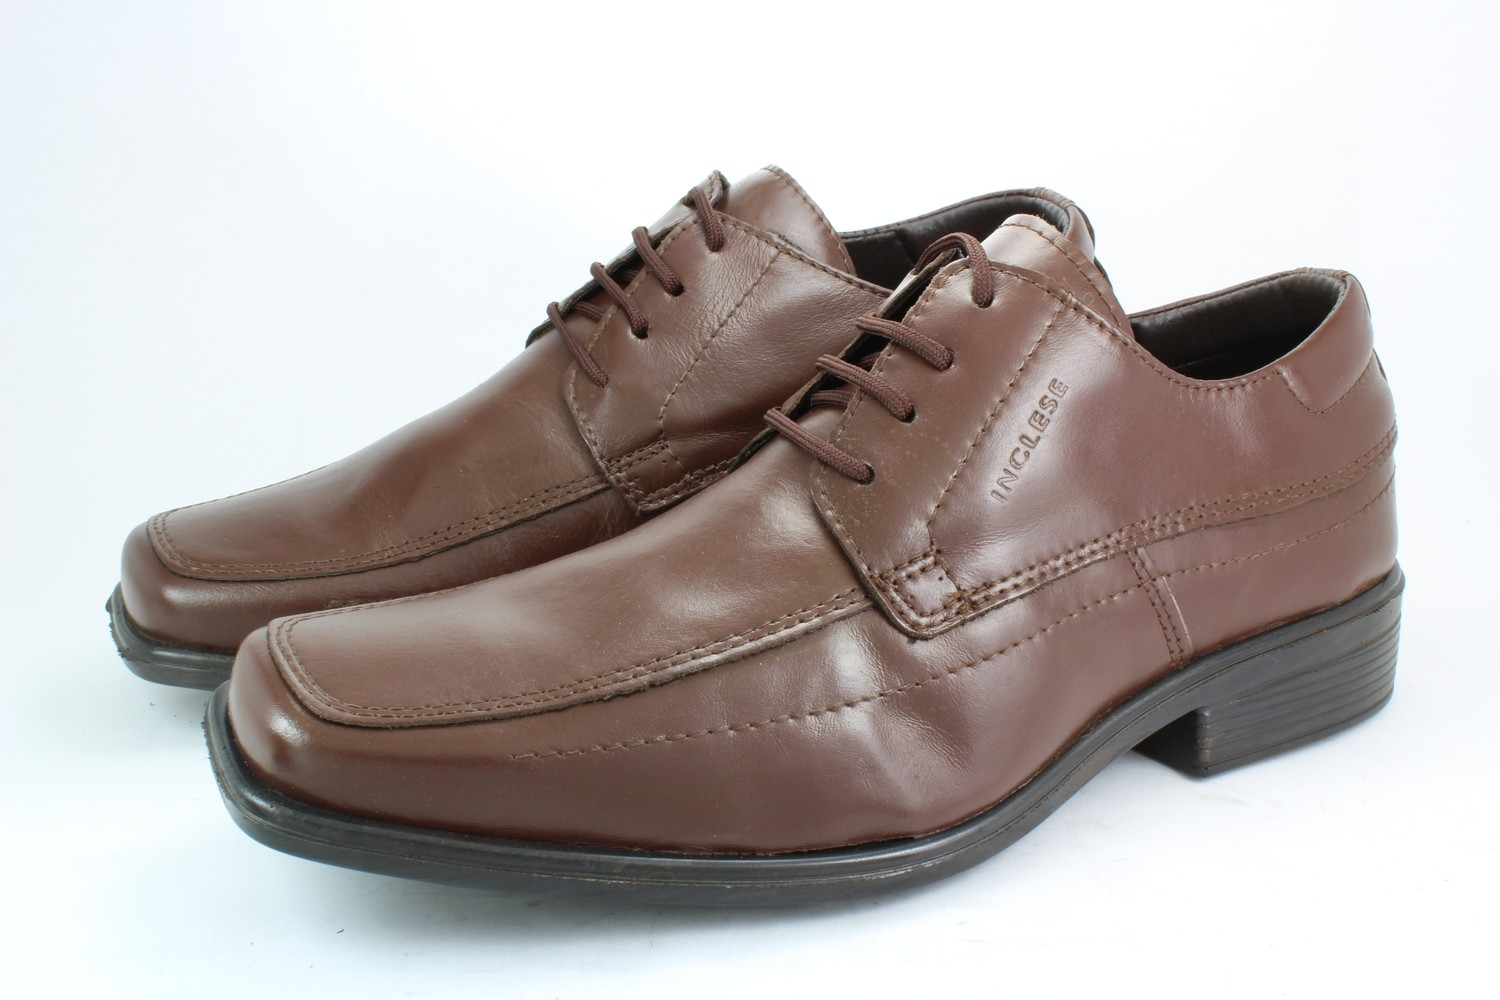 Mens Shoes Genuine Leather Brown - SUGGESTED RETAIL PRICE $45.00 - WHOLESALE PRICE $9 - Minimum purchase 5 pairs